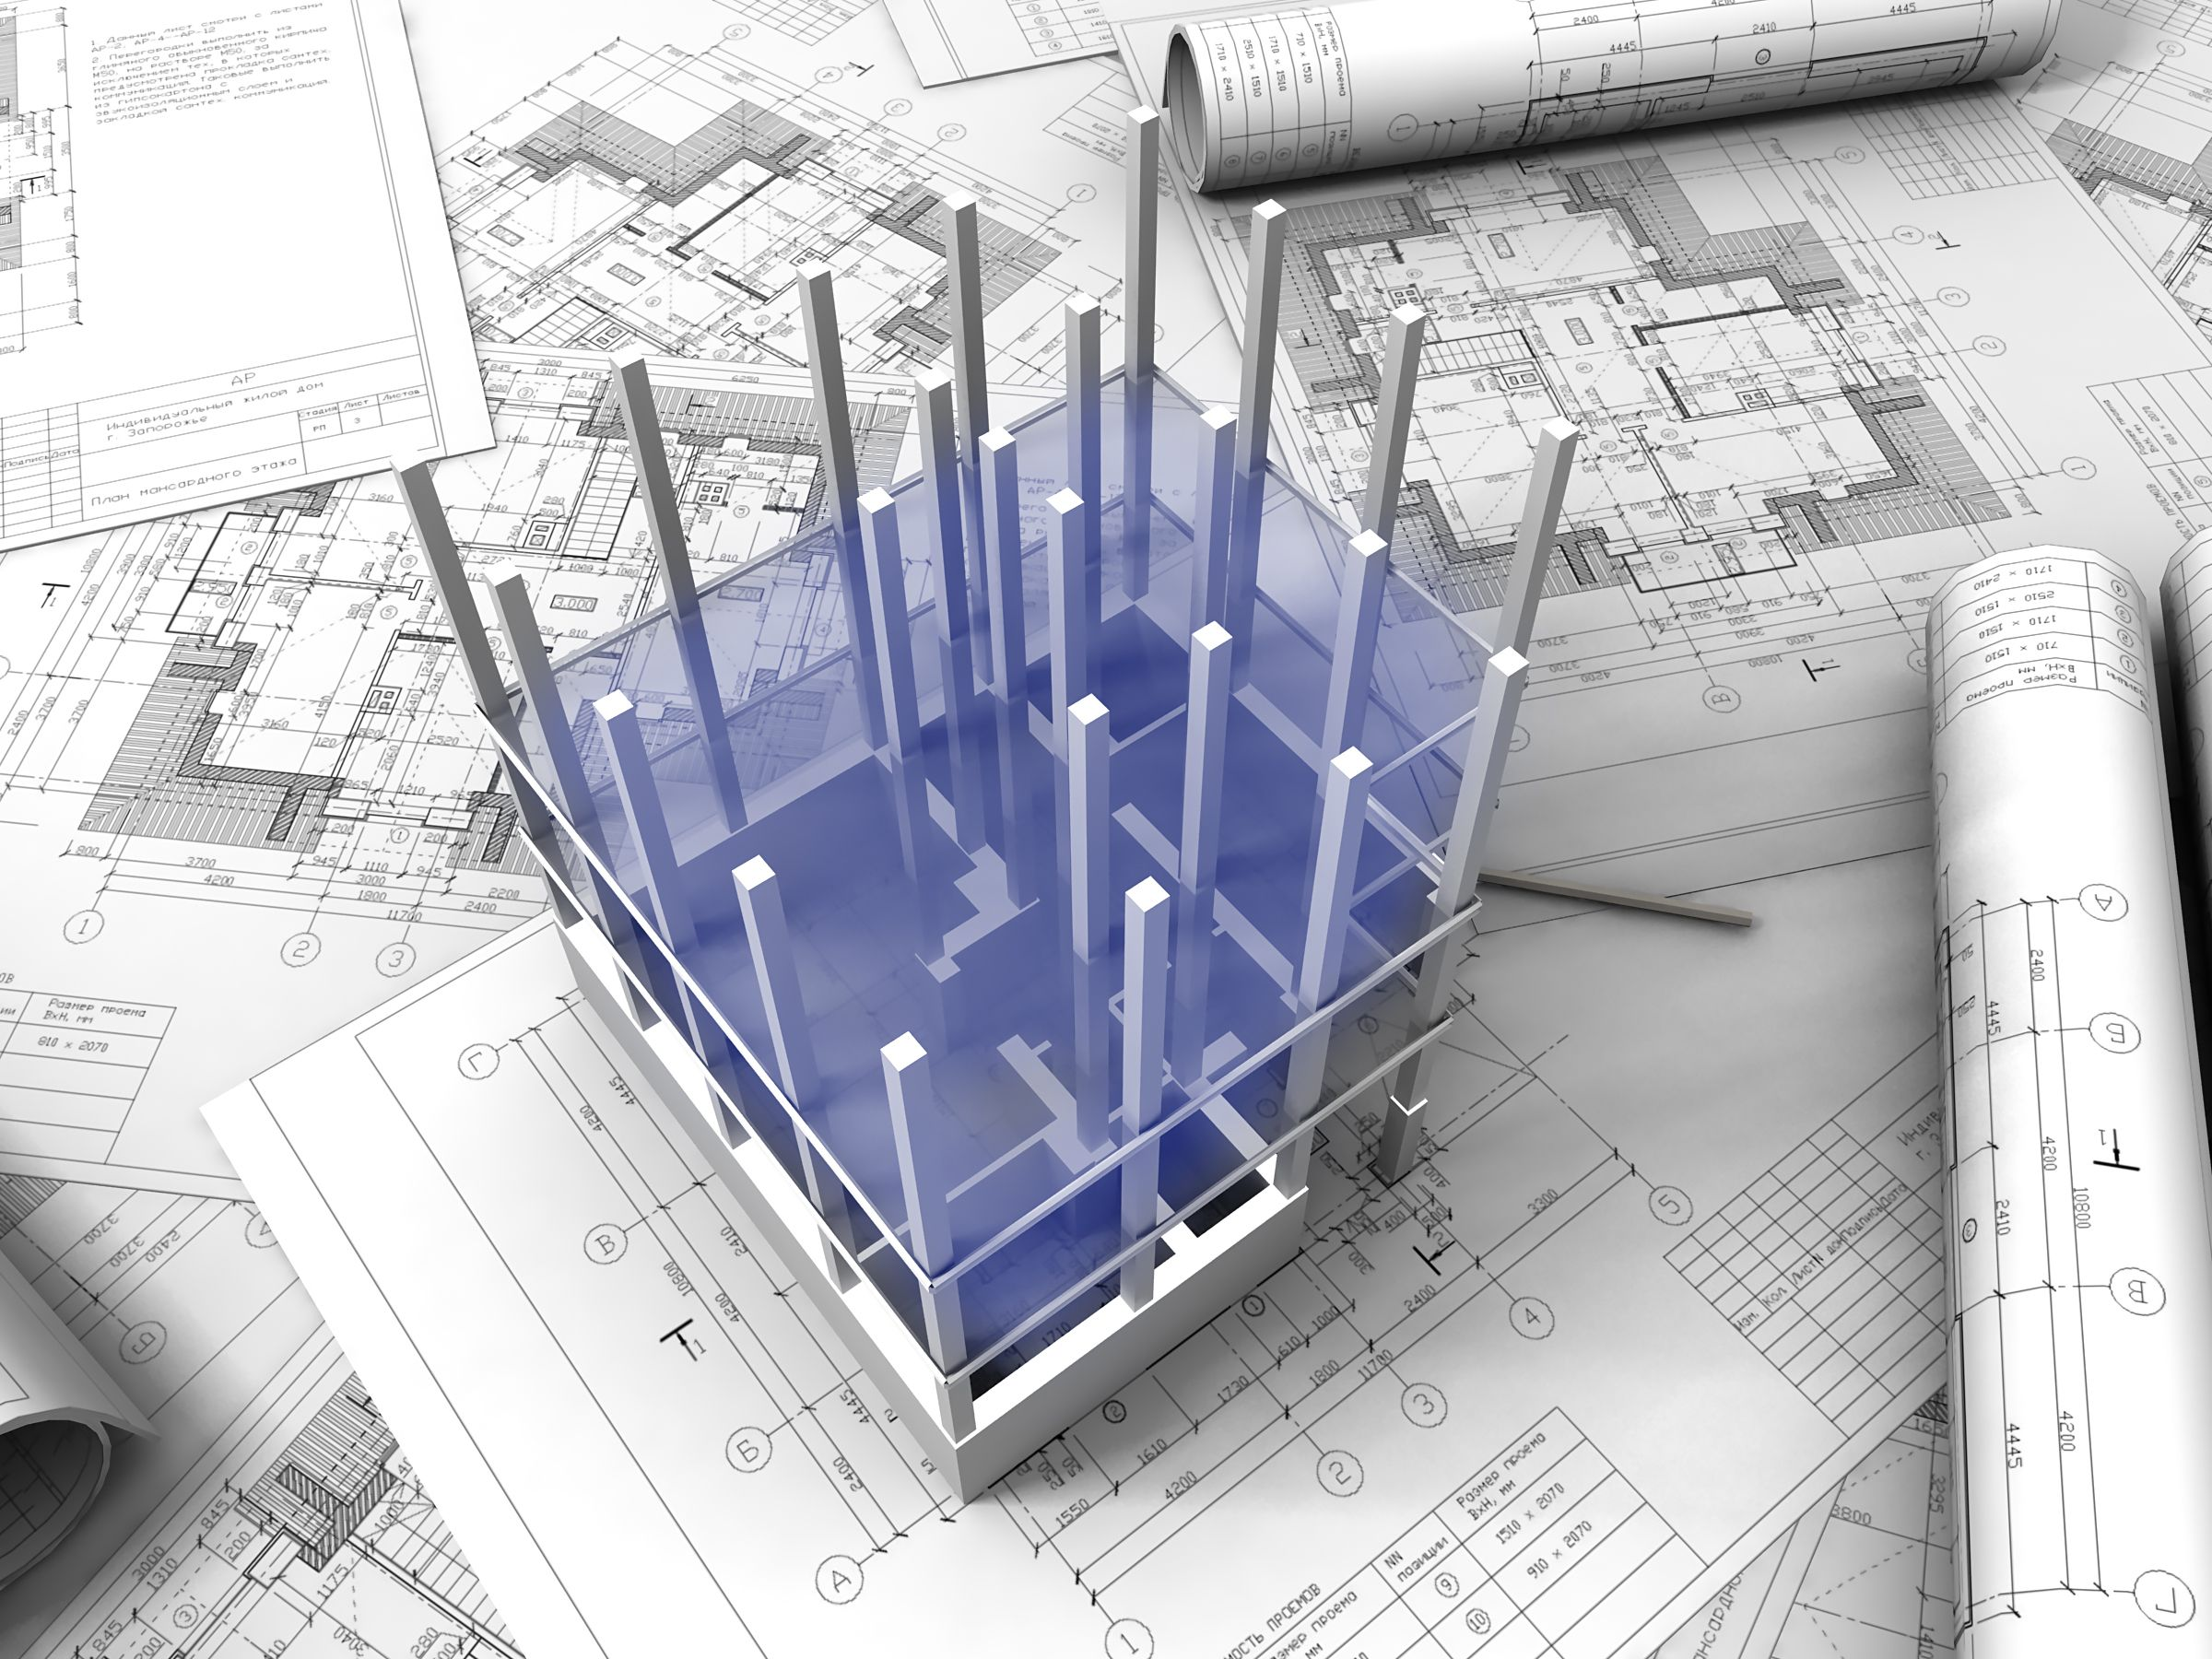 Concrete Beam Design Sngtconsulting Co Uk Structural Engineering Plan Drawing Business Planning